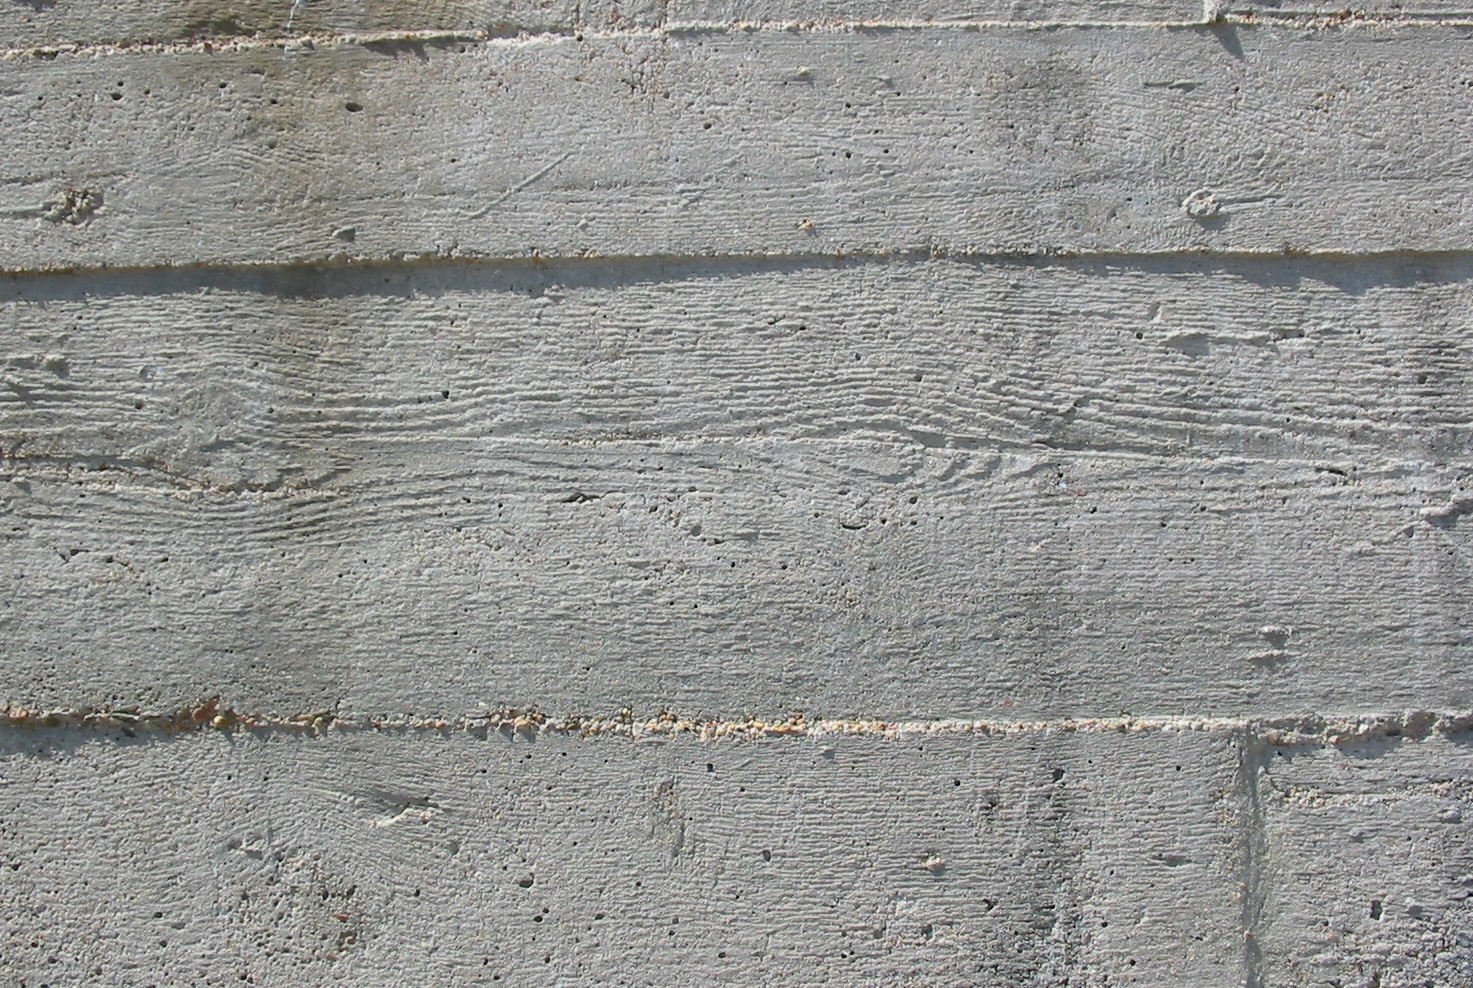 File:Wood grain German Occupation bunker concrete 1.jpg